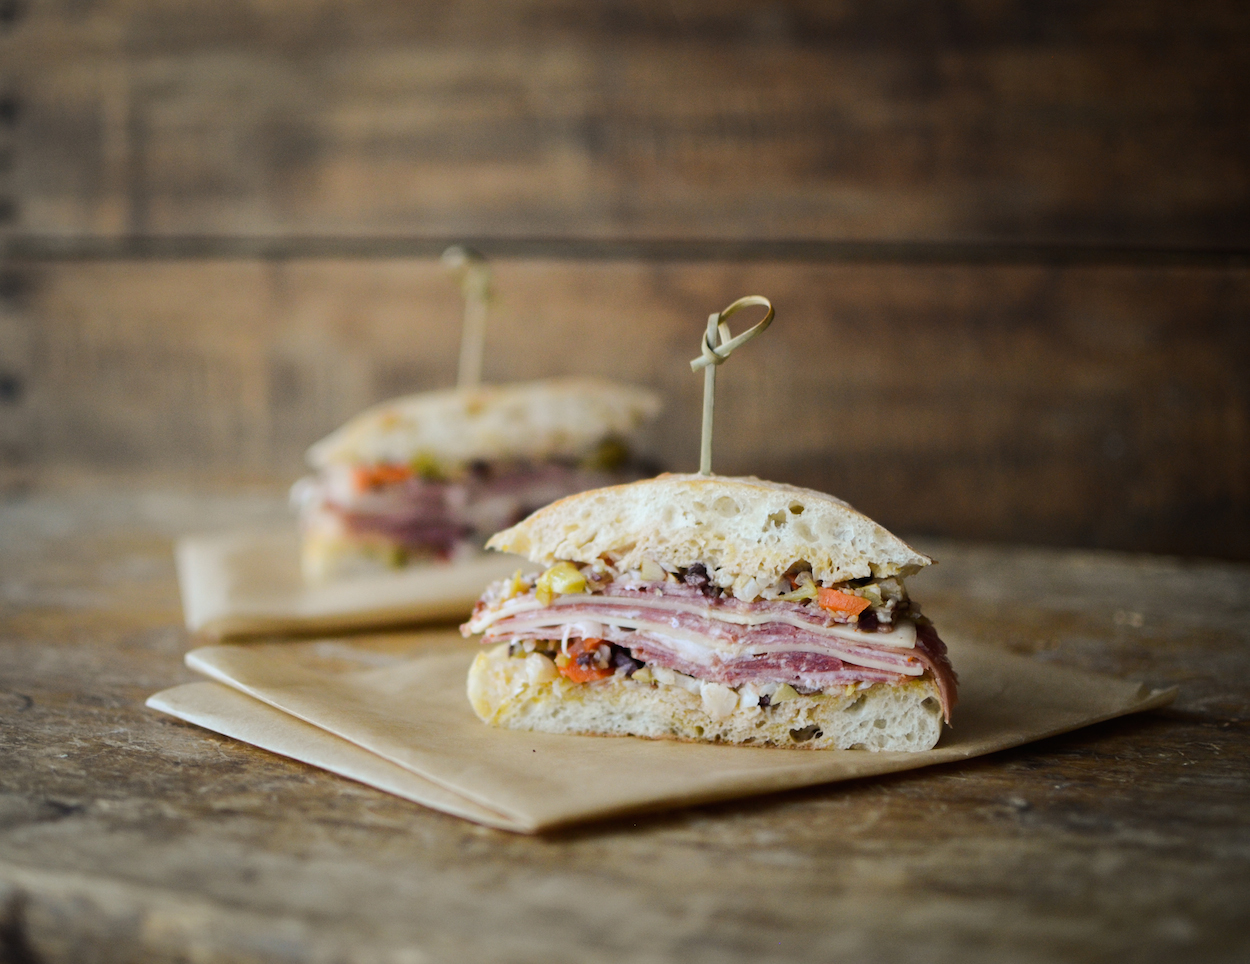 Muffuletta cut in half